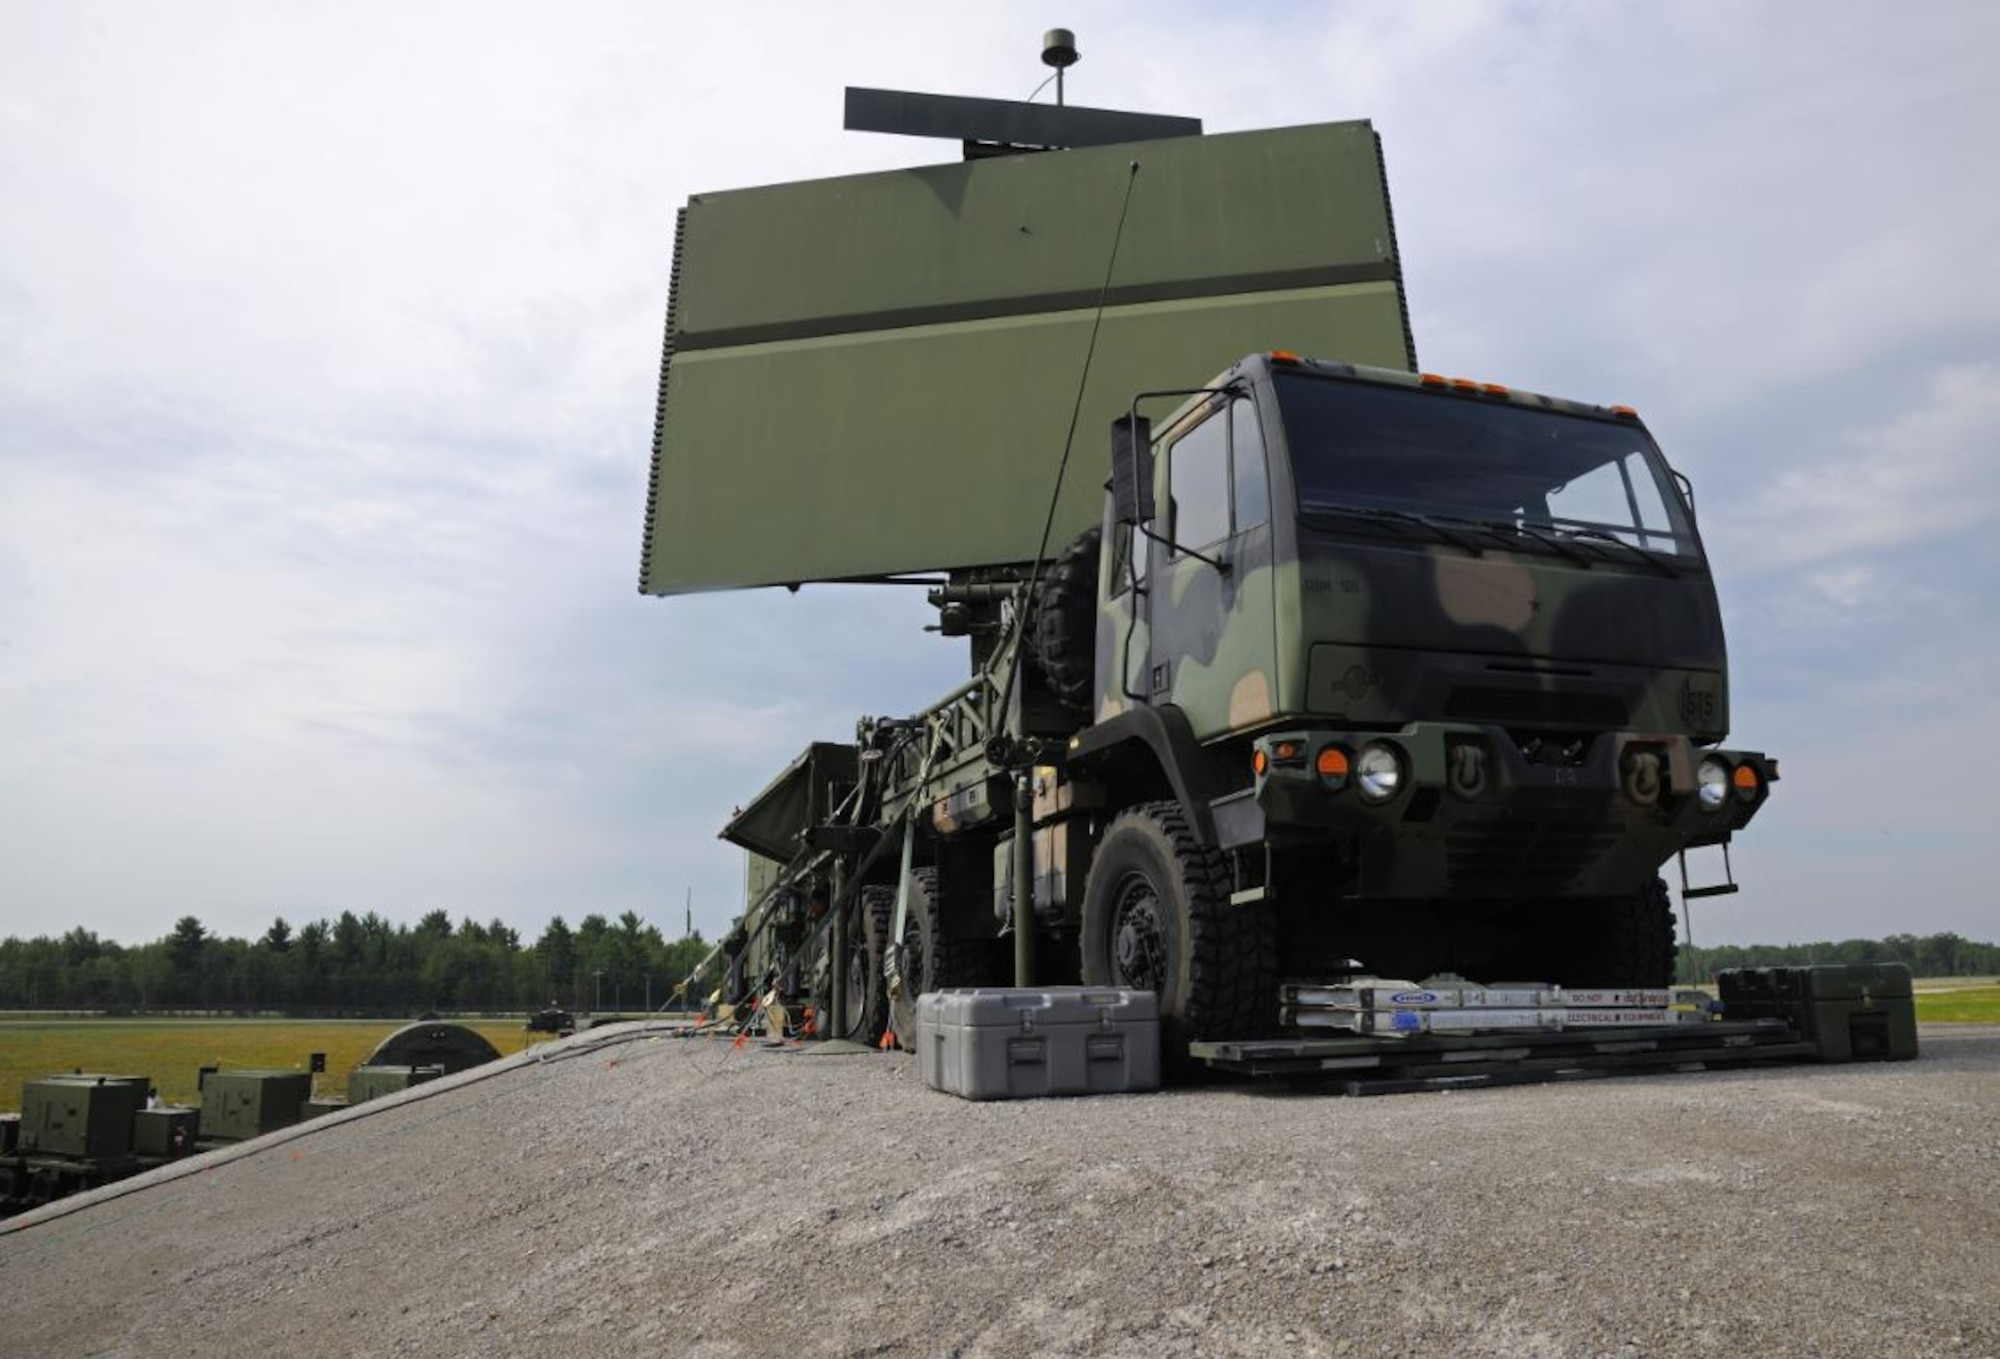 """The Three Dimensional Expeditionary Long-Range Radar, or 3DELRR, program office, headquartered at Hanscom Air Force Base, Mass., awarded an integration contract with production options to Lockheed Martin Corp. March 26, 2021. Program officials are currently utilizing the """"SpeedDealer"""" strategy to acquire a production-ready, commercially available upgrade for the TPS-75 radar, pictured on a transport vehicle here."""